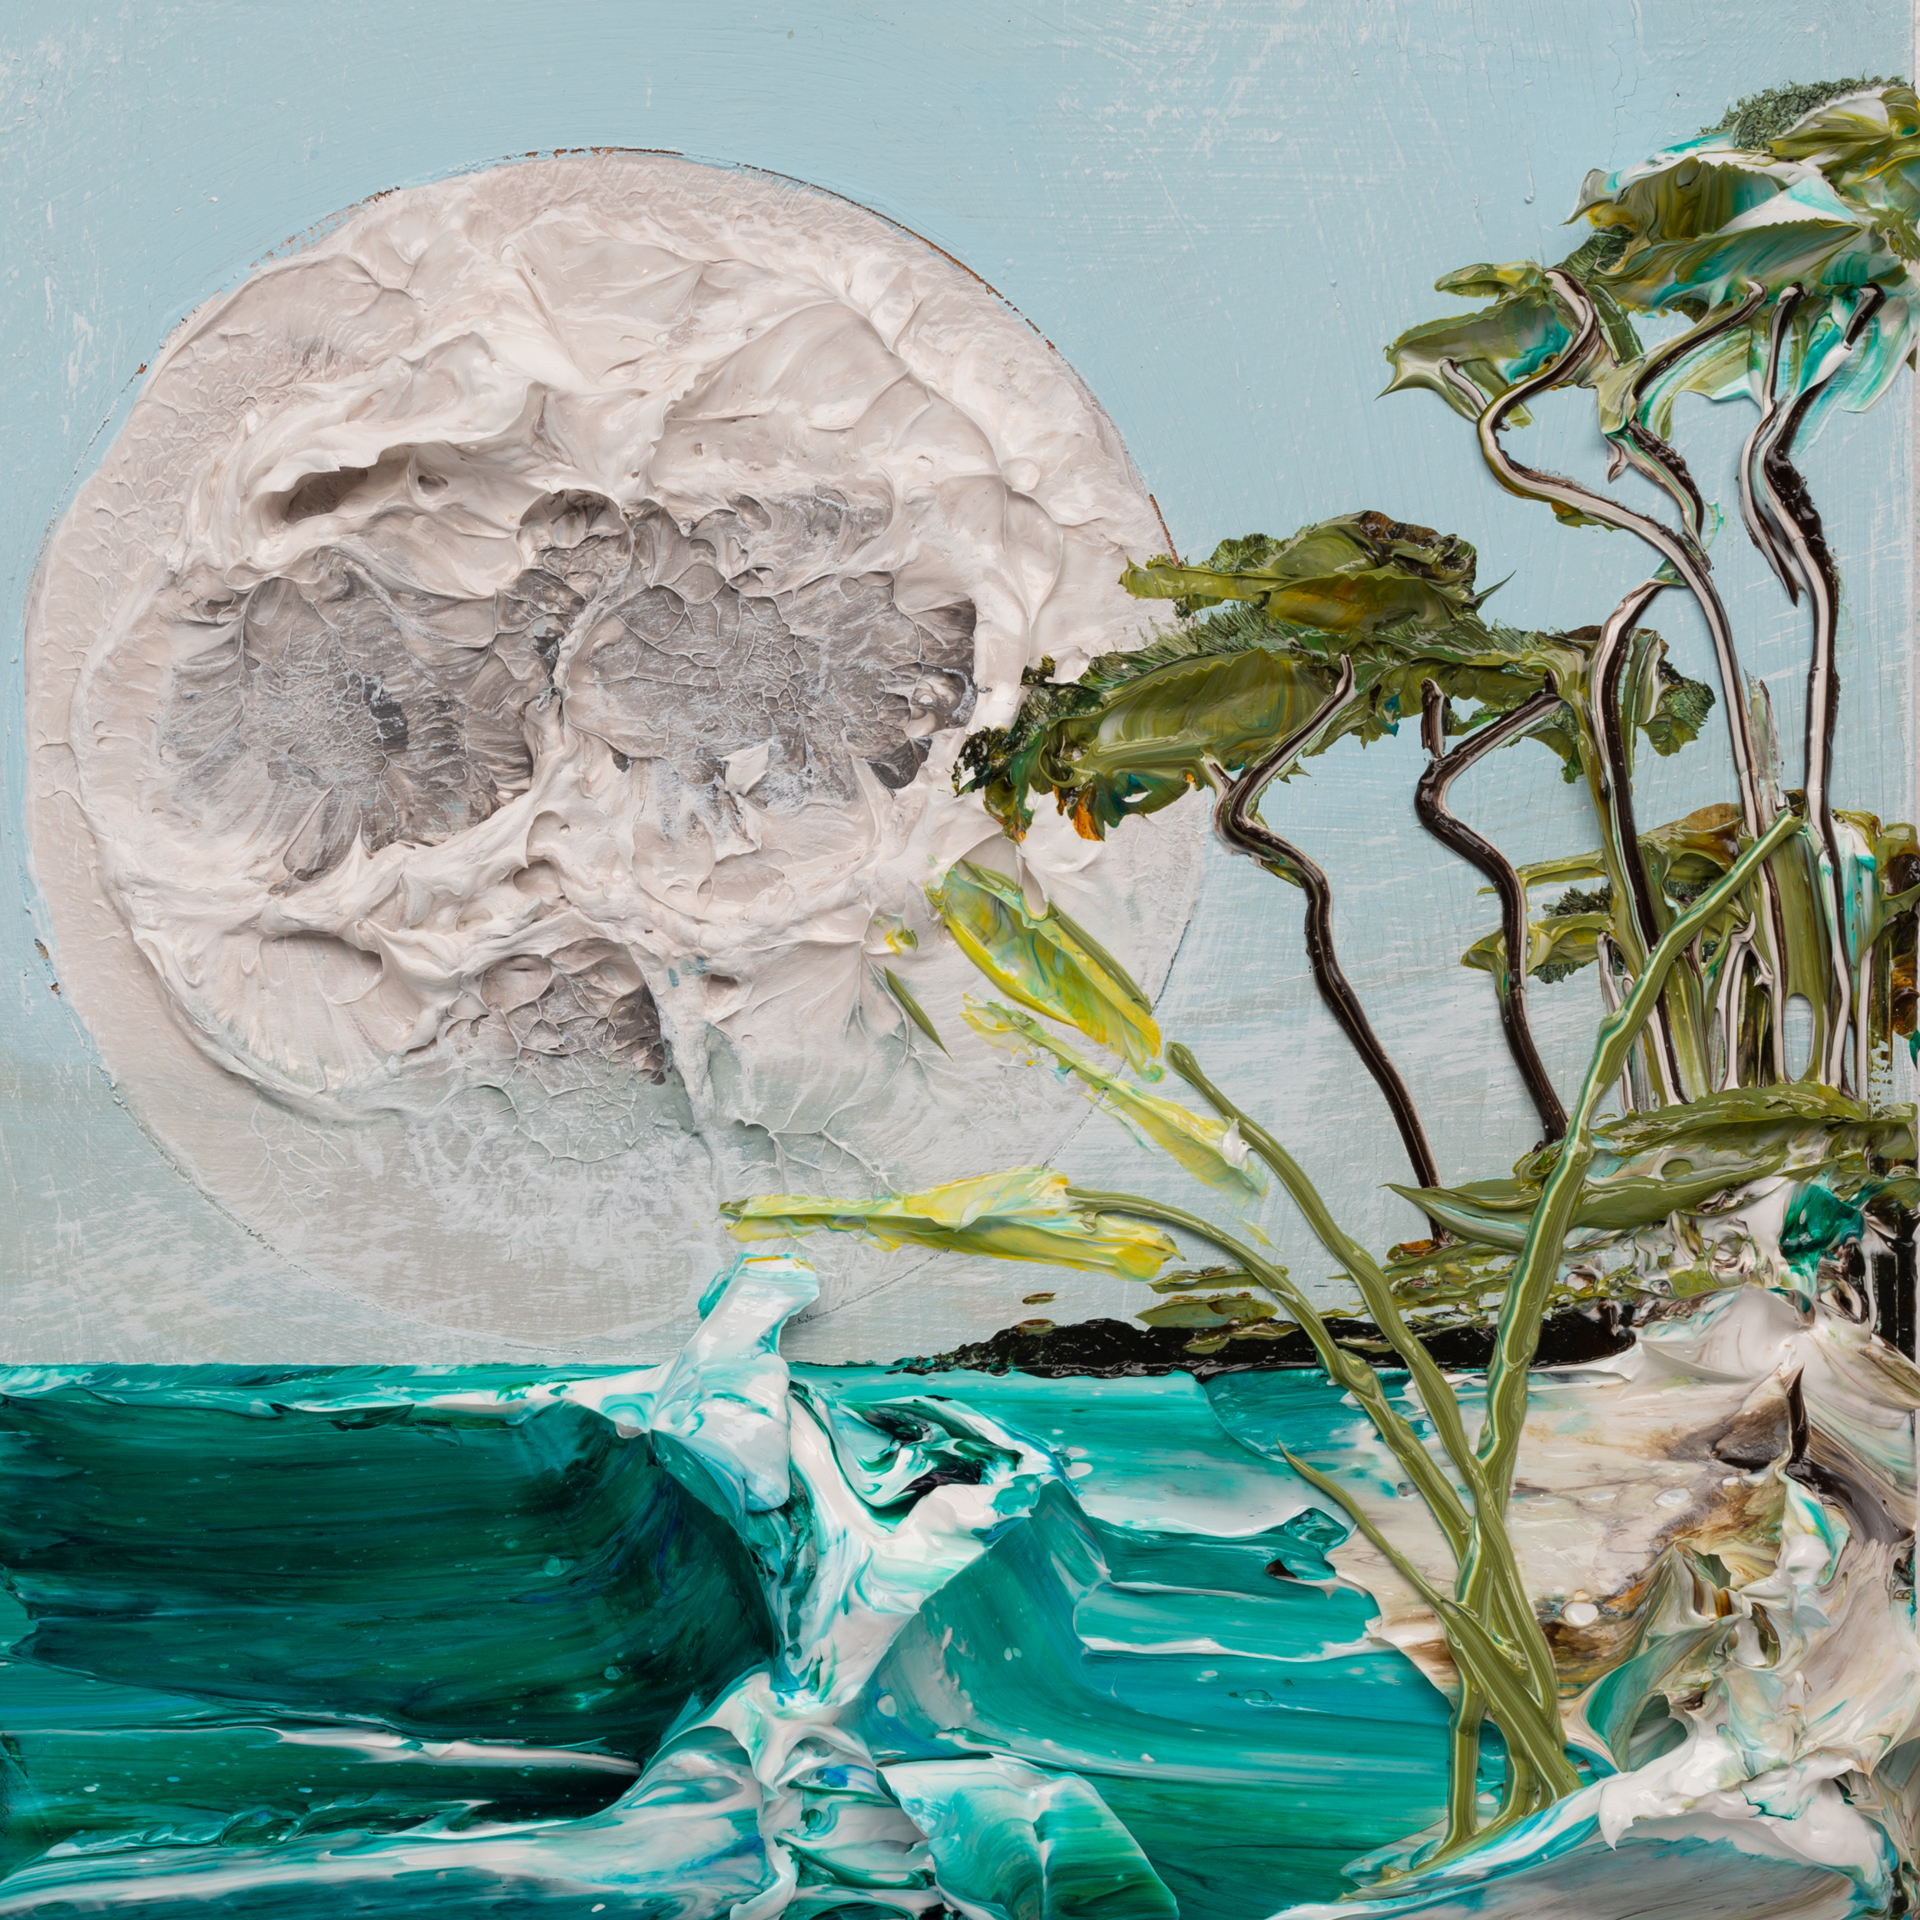 (SOLD) MOONSCAPE MS-12X12-2019-323 by JUSTIN GAFFREY